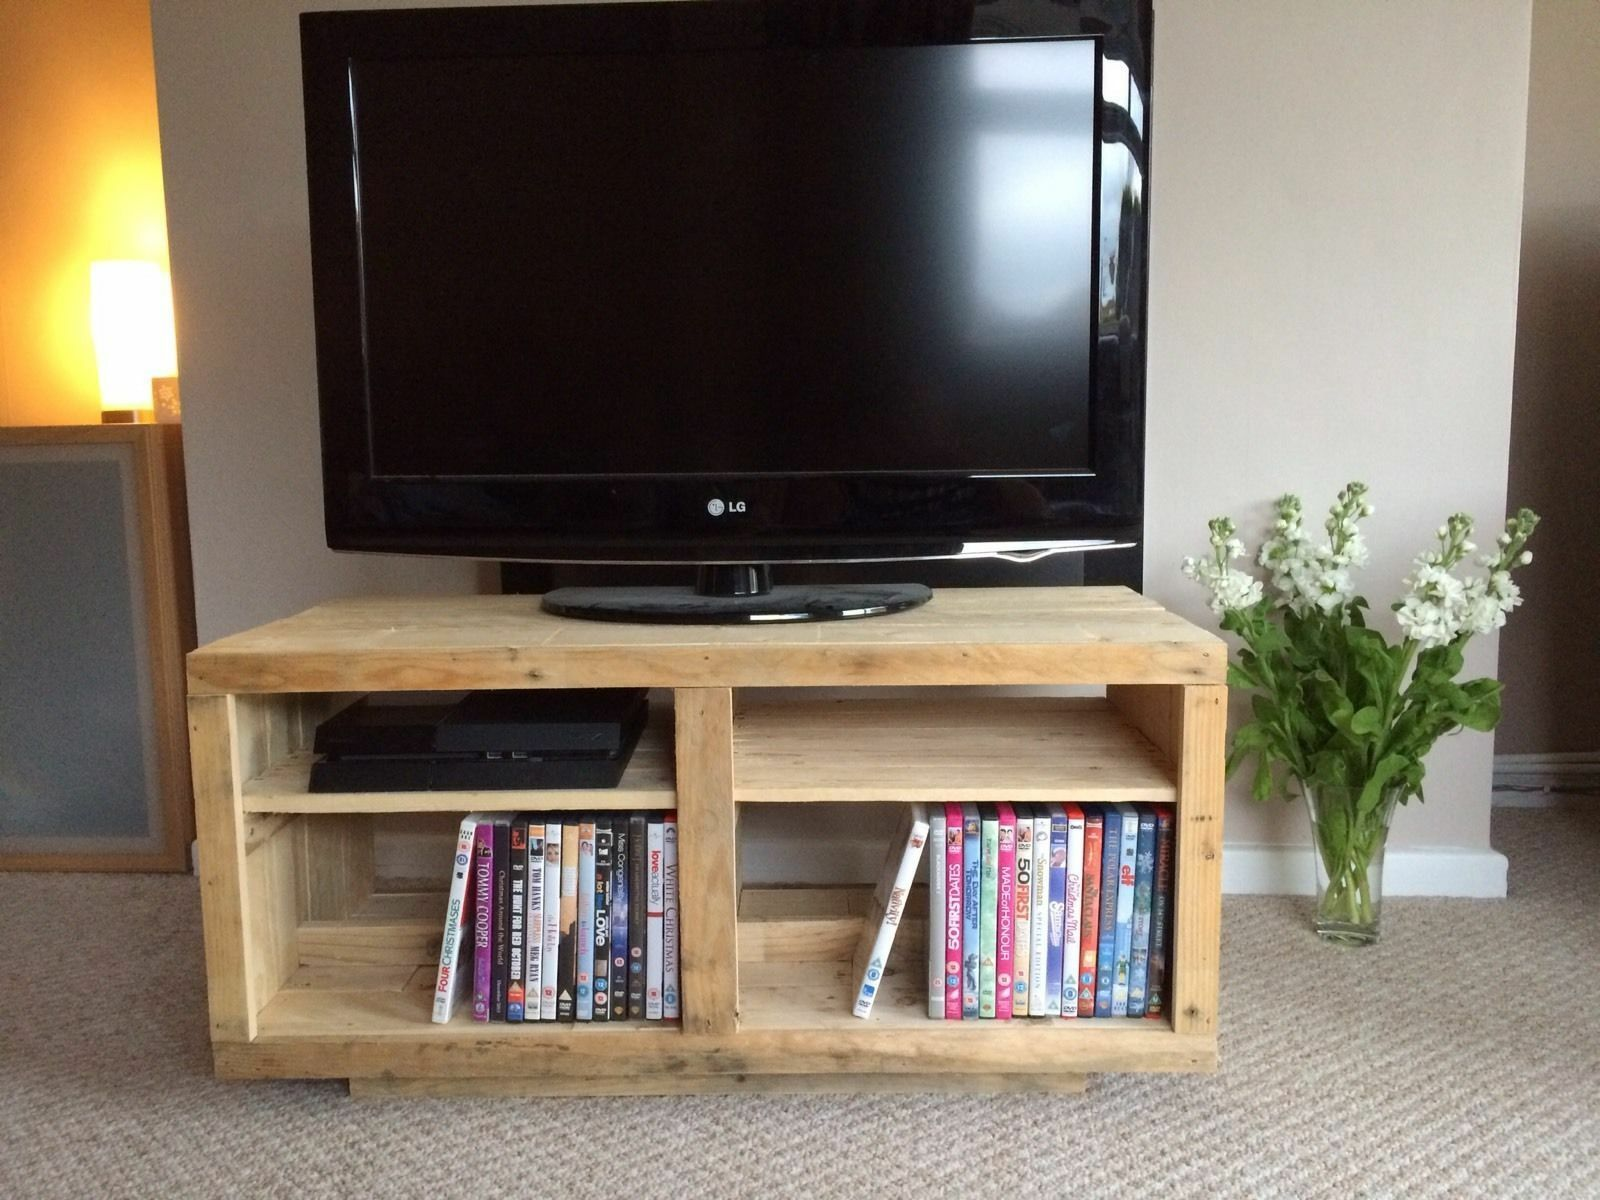 Very Impressive portraiture of How to Build a TV Stand Out of Wood eBay with #CA8301 color and 1600x1200 pixels